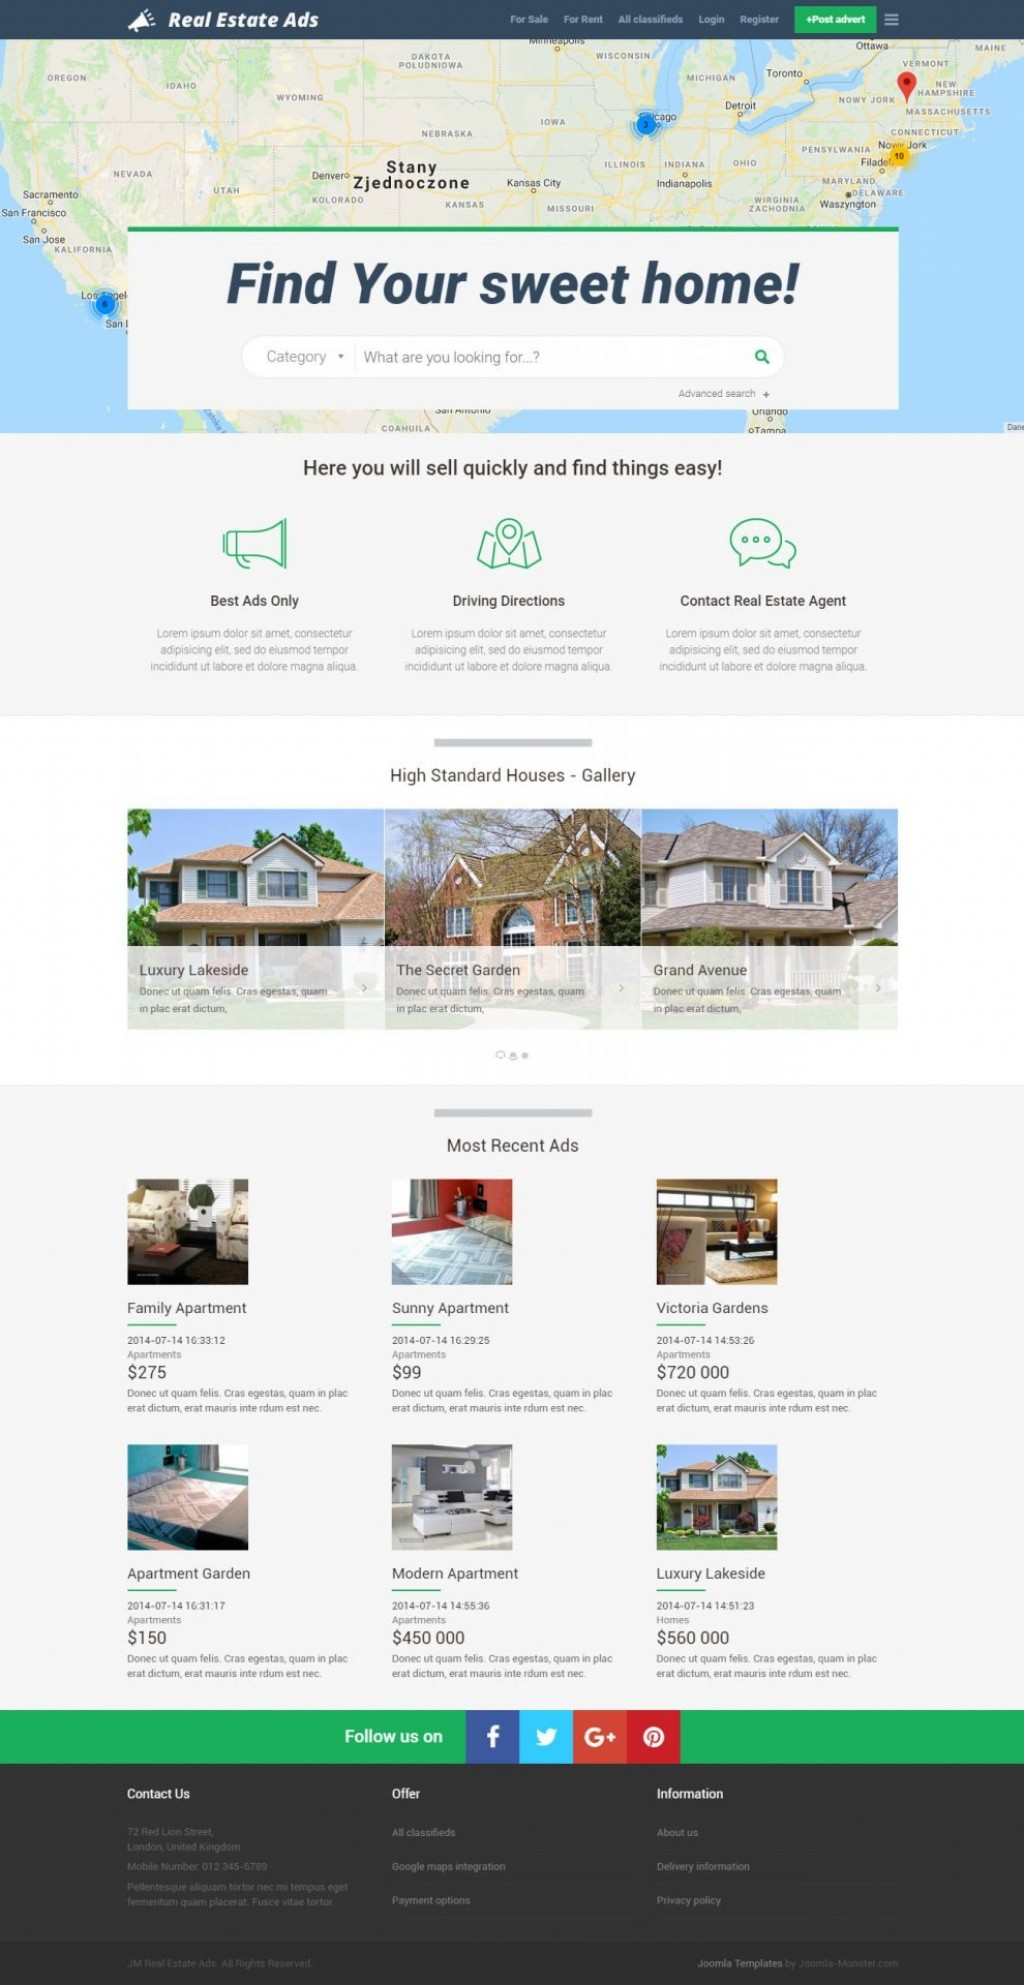 004 Imposing Real Estate Advertising Template High Def  Facebook Ad CraigslistLarge